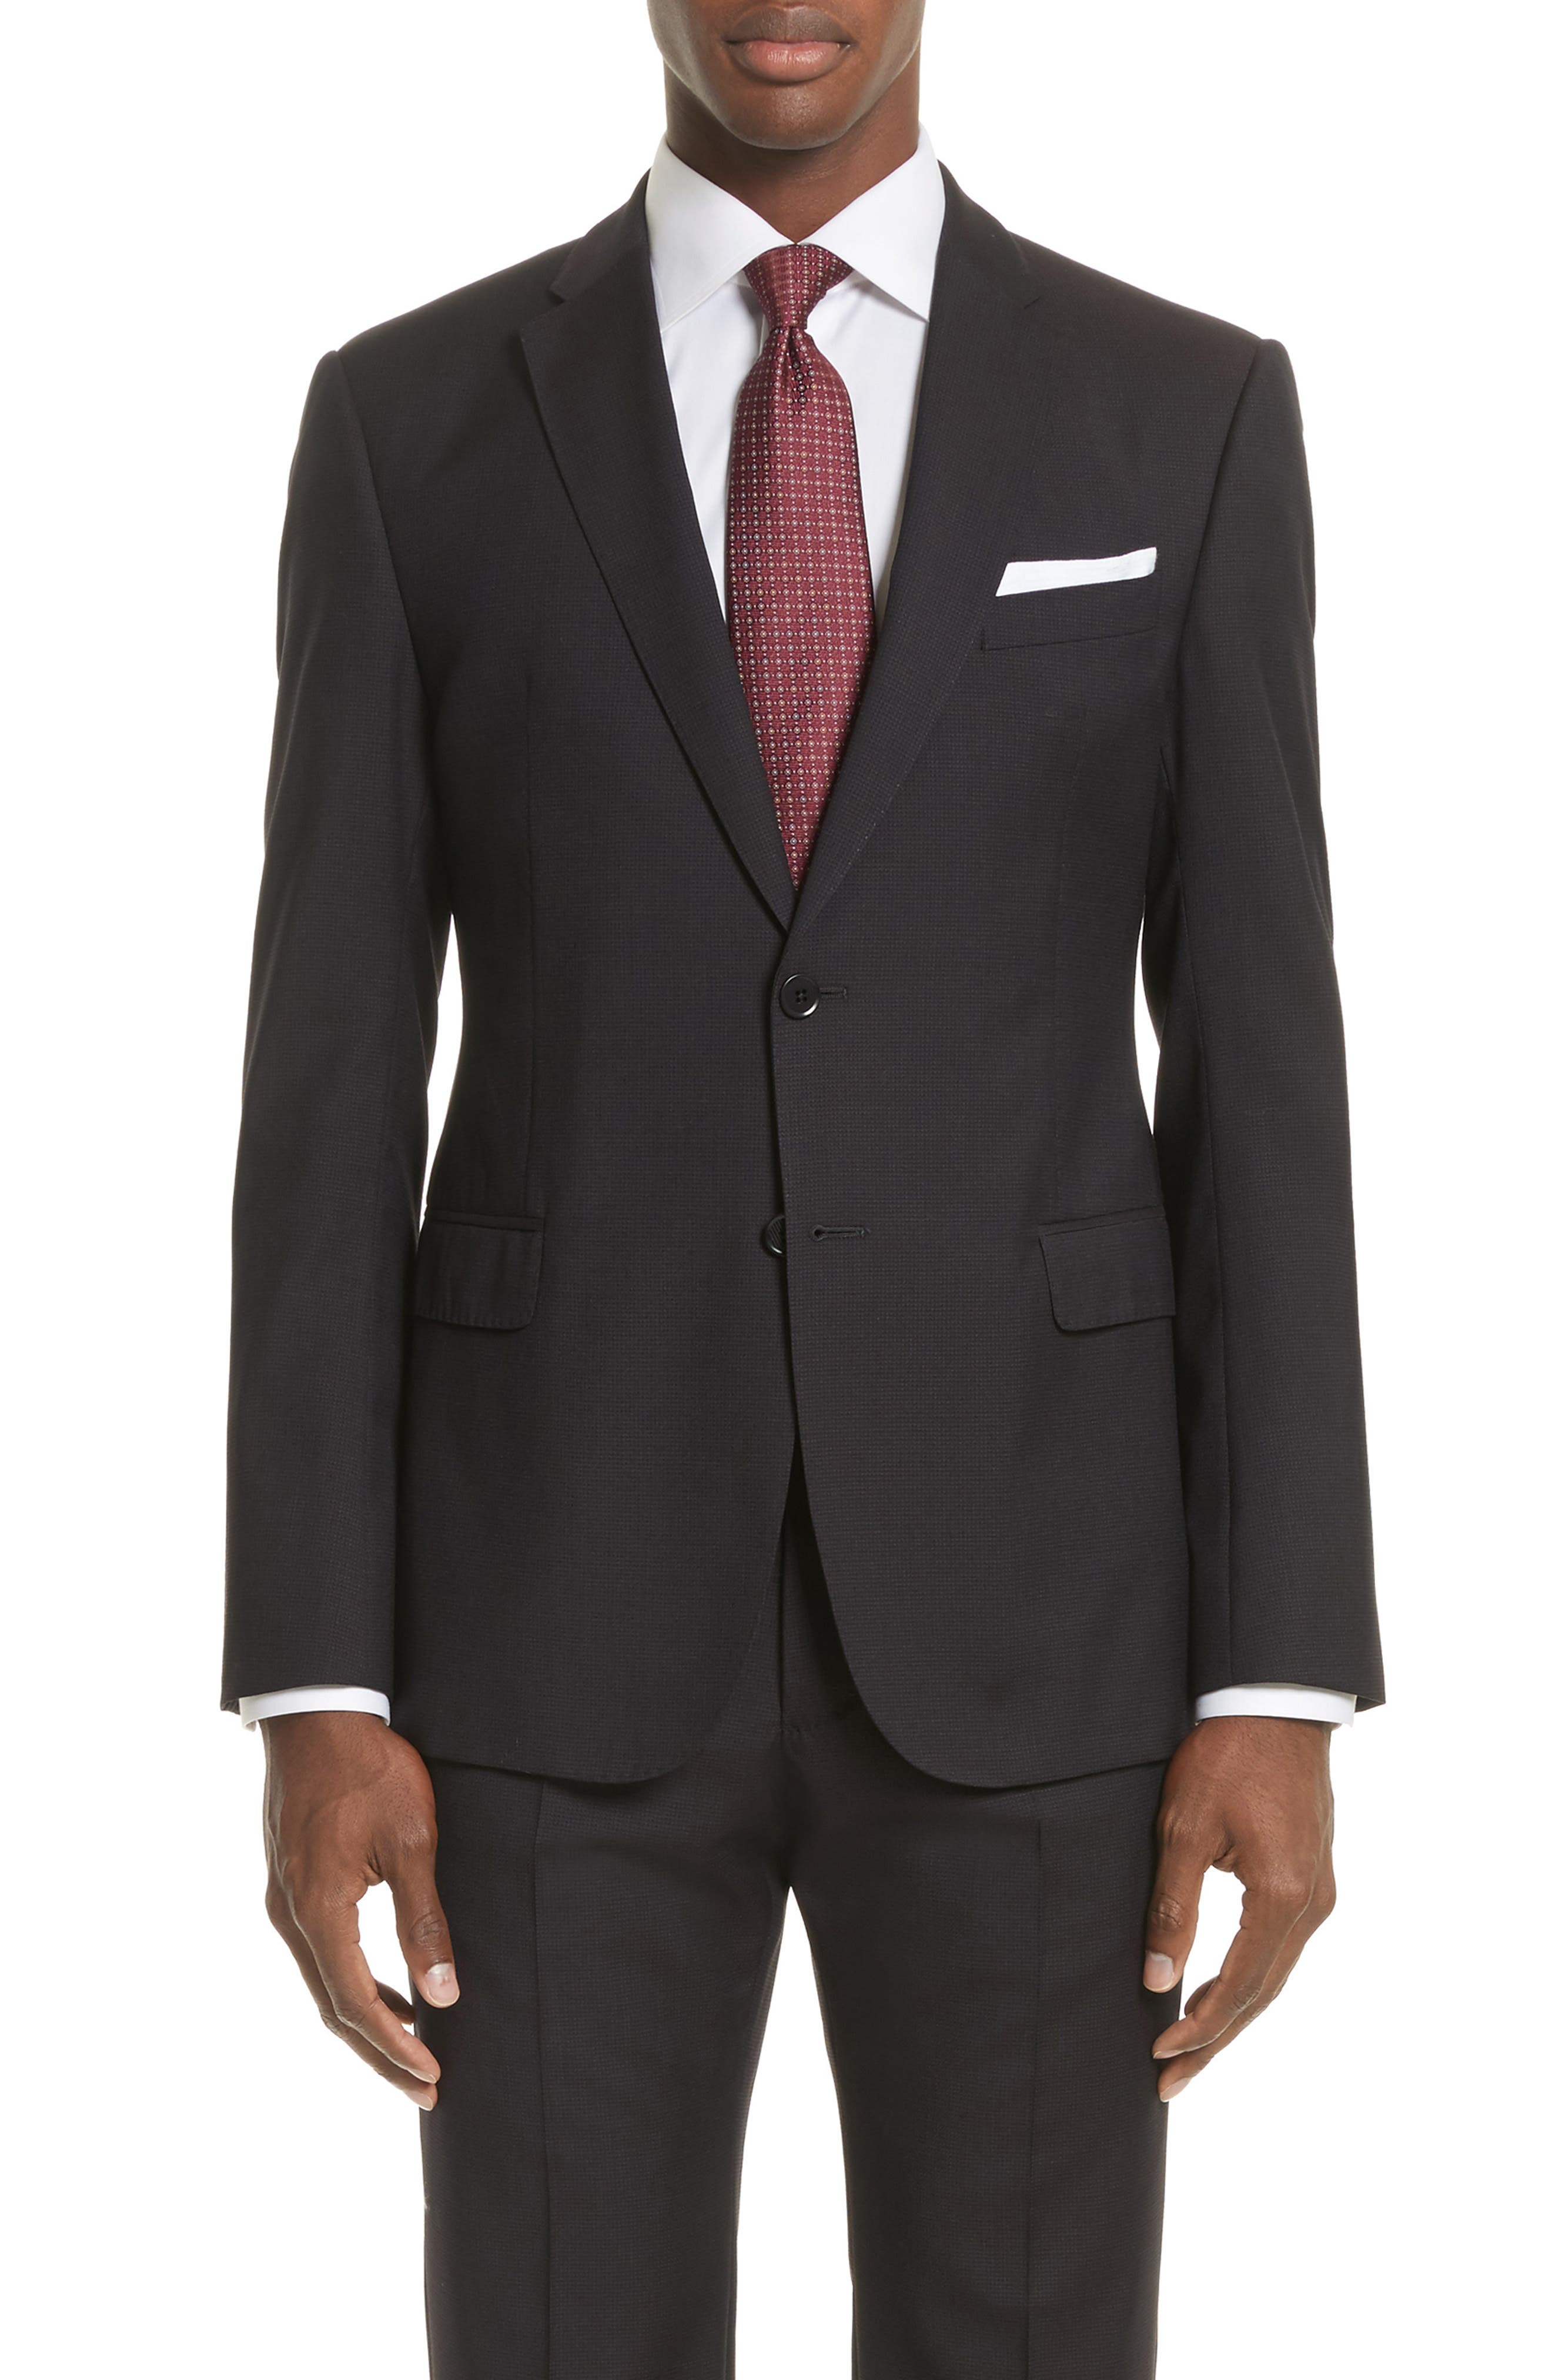 Emporio Armani M-Line Trim Fit Solid Wool Suit,                             Alternate thumbnail 4, color,                             Solid Dark Red